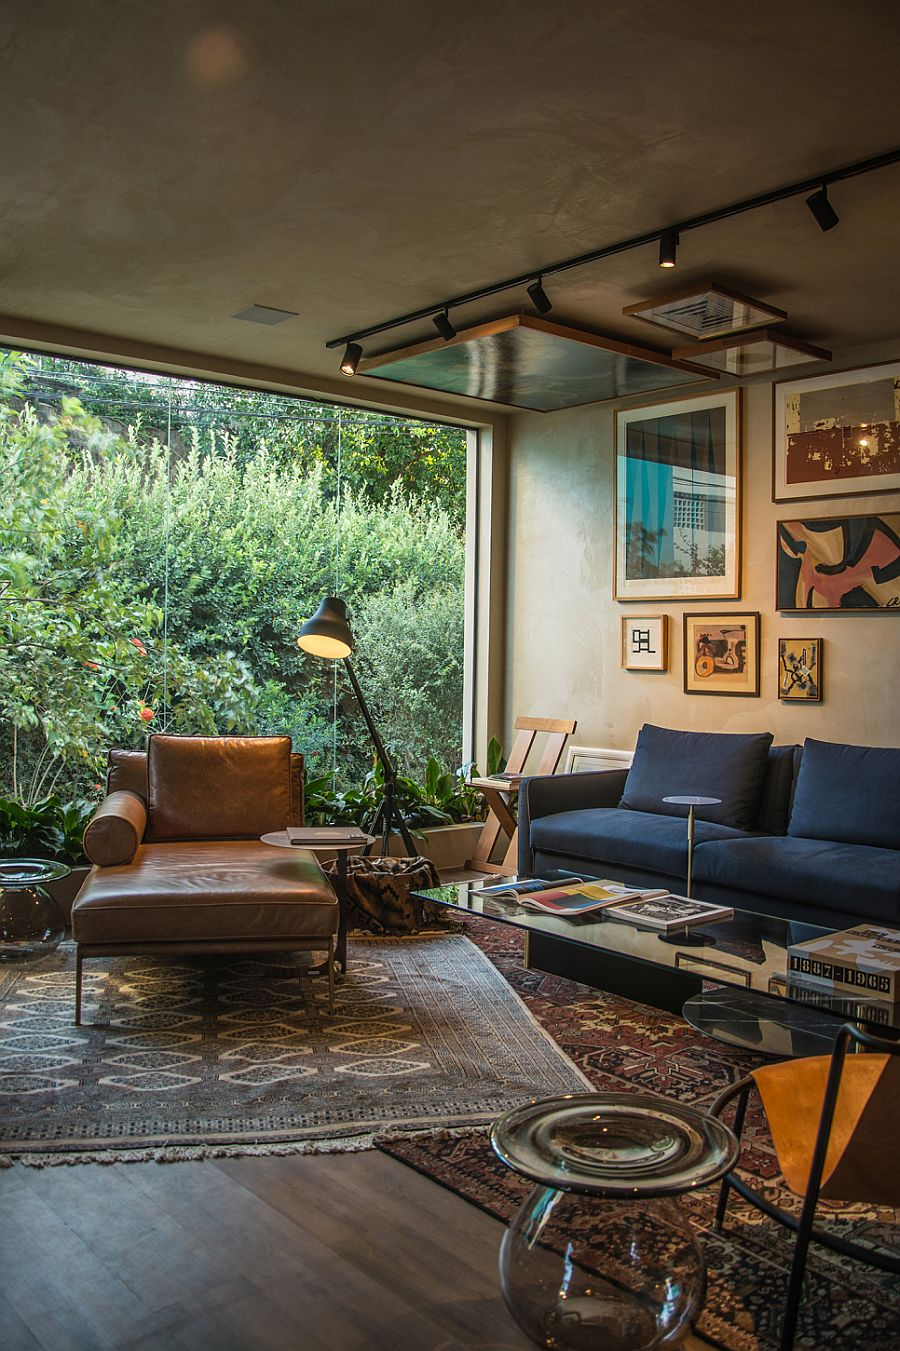 Living room of the stunning home displays stunnin collection of art pieces by various international artists